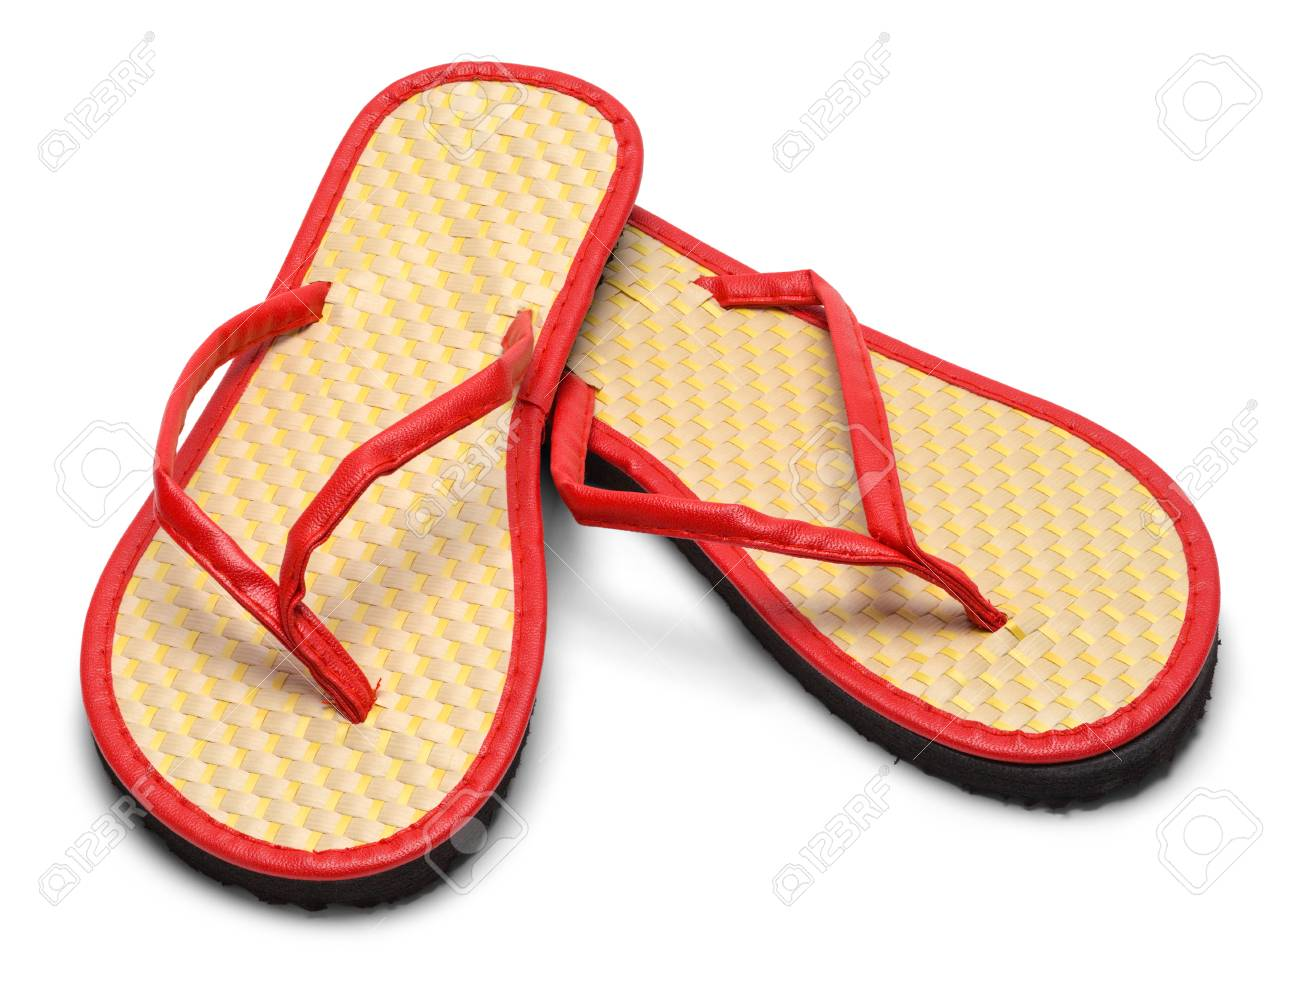 b7bb9a99a Pair of woven Flip Flops Isolated on a White Background. Stock Photo -  87912602